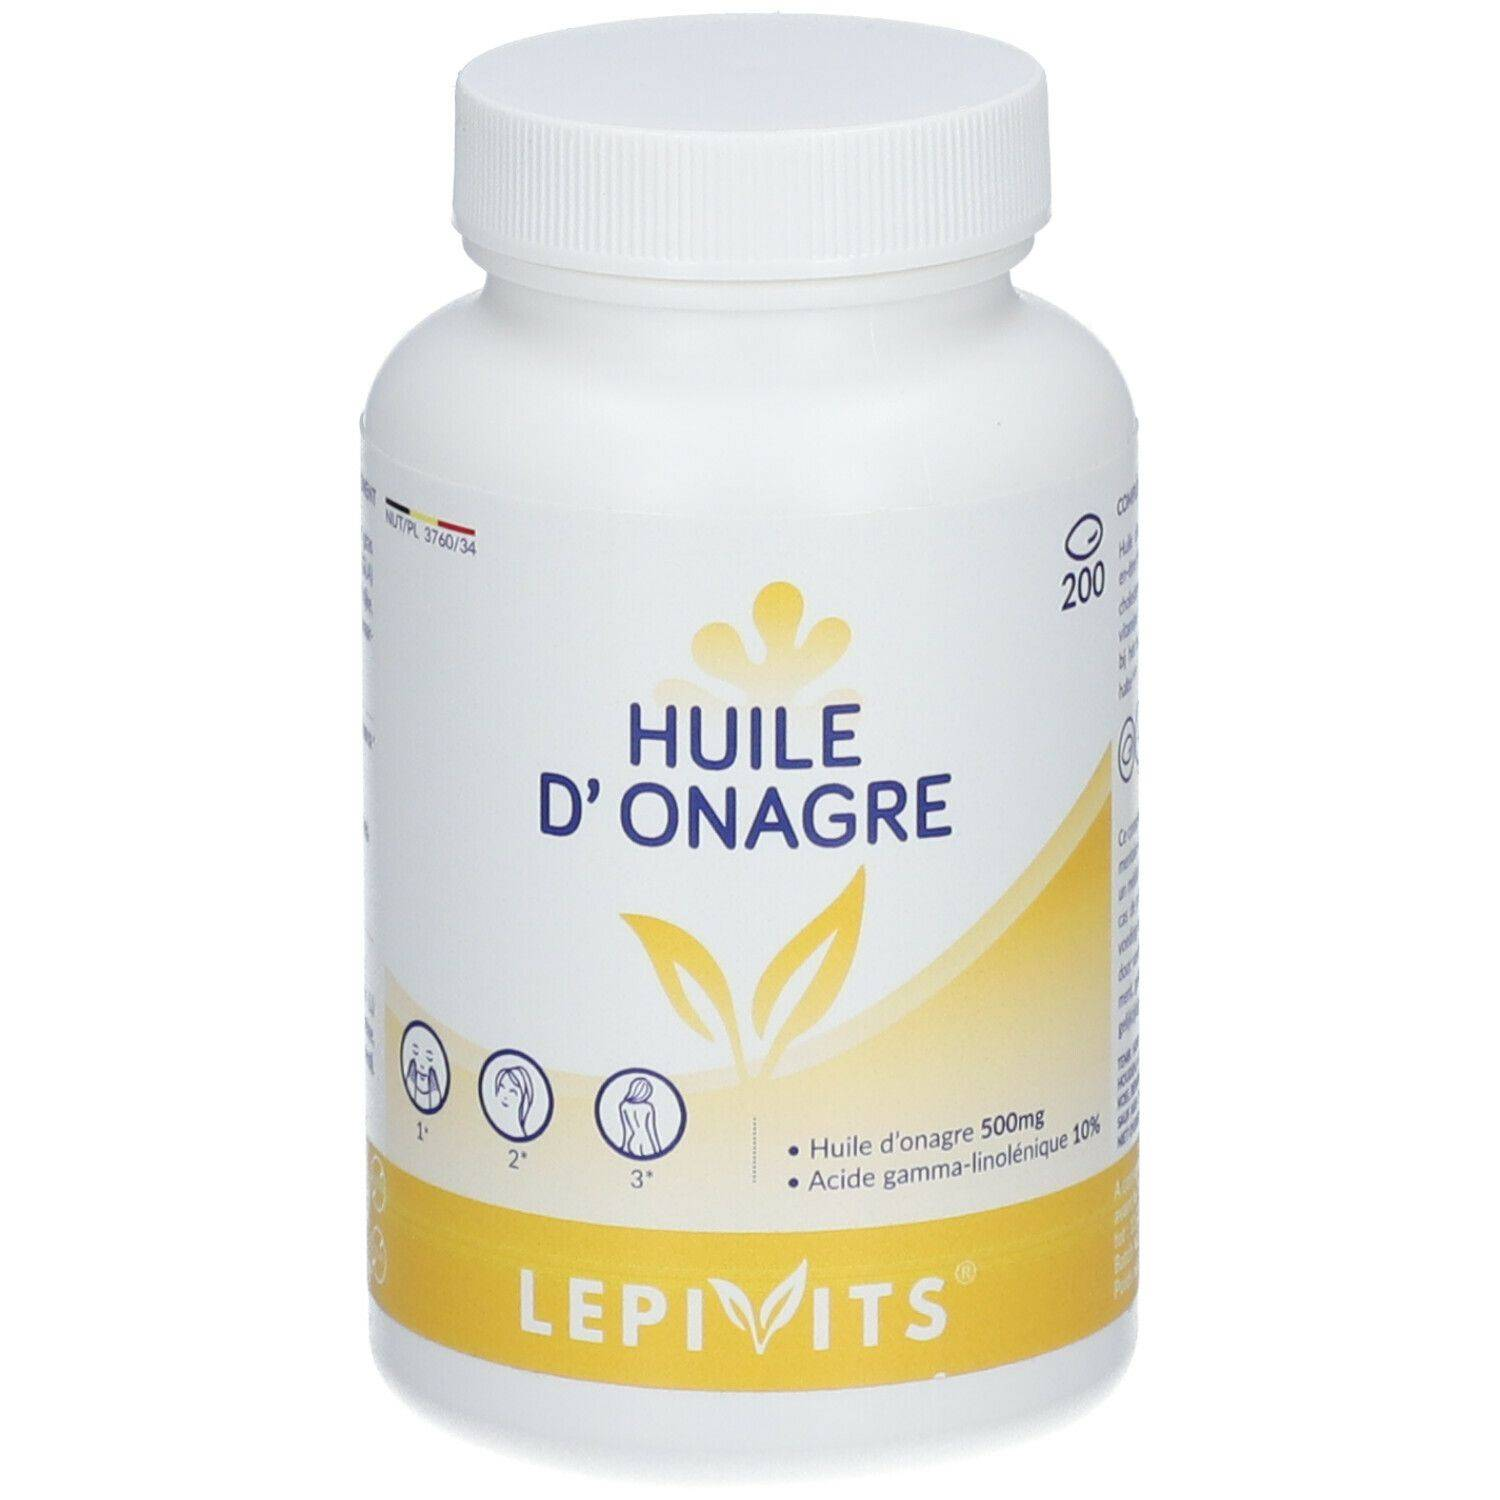 Leppin LEPIVITS® Huile d'Onagre Leppin pc(s) capsule(s)